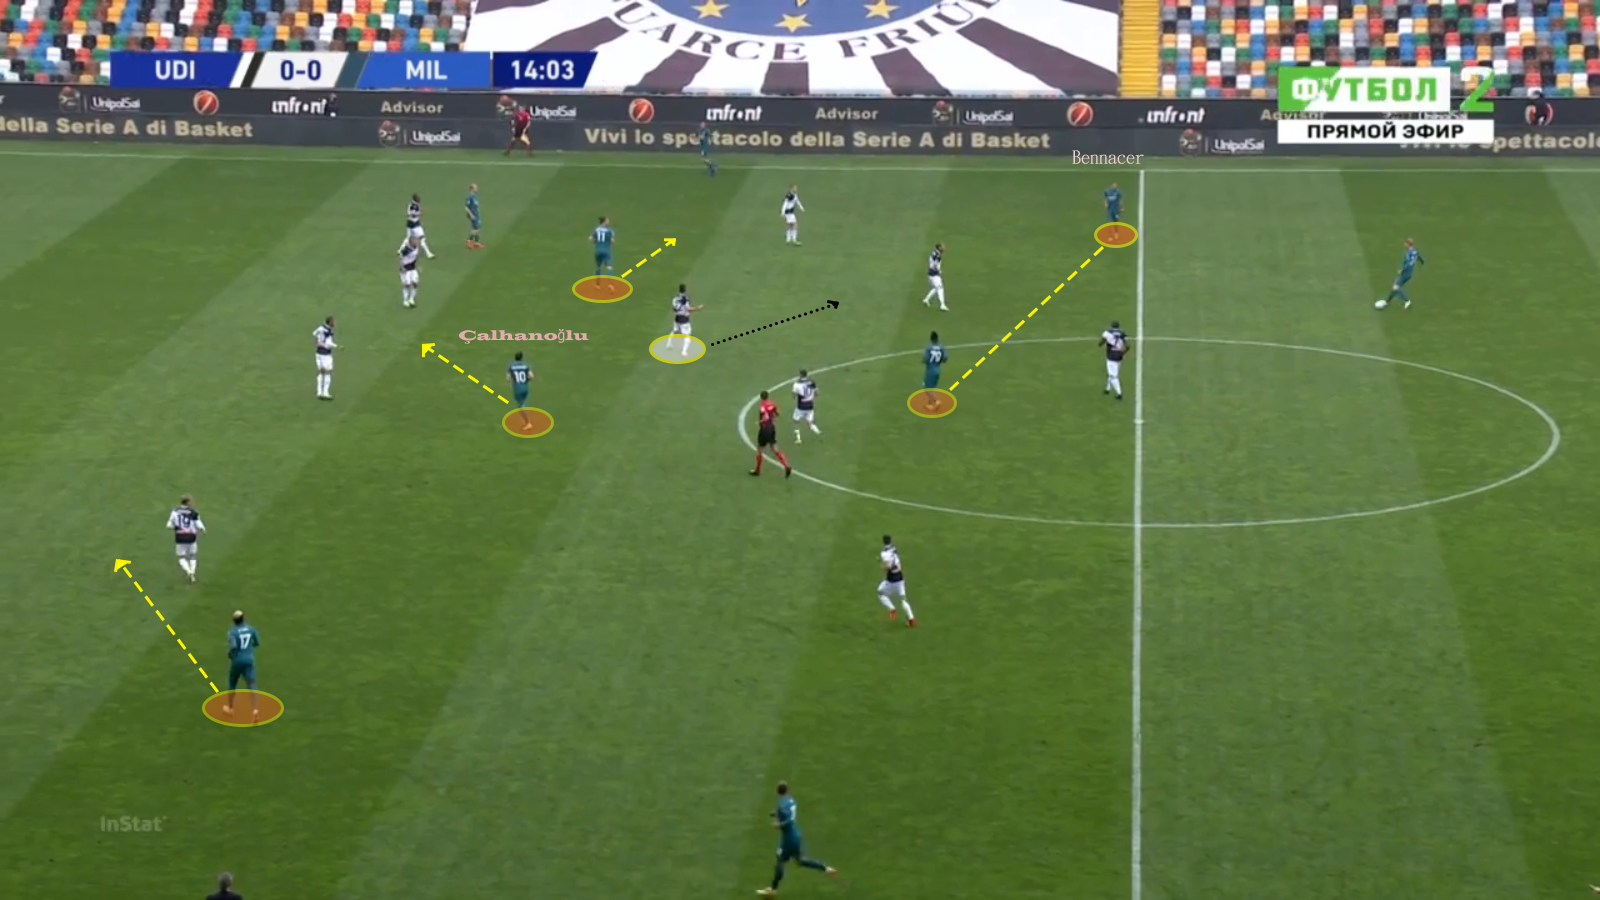 Serie A 2019/20: Udinese vs Milan – tactical analysis - tactics